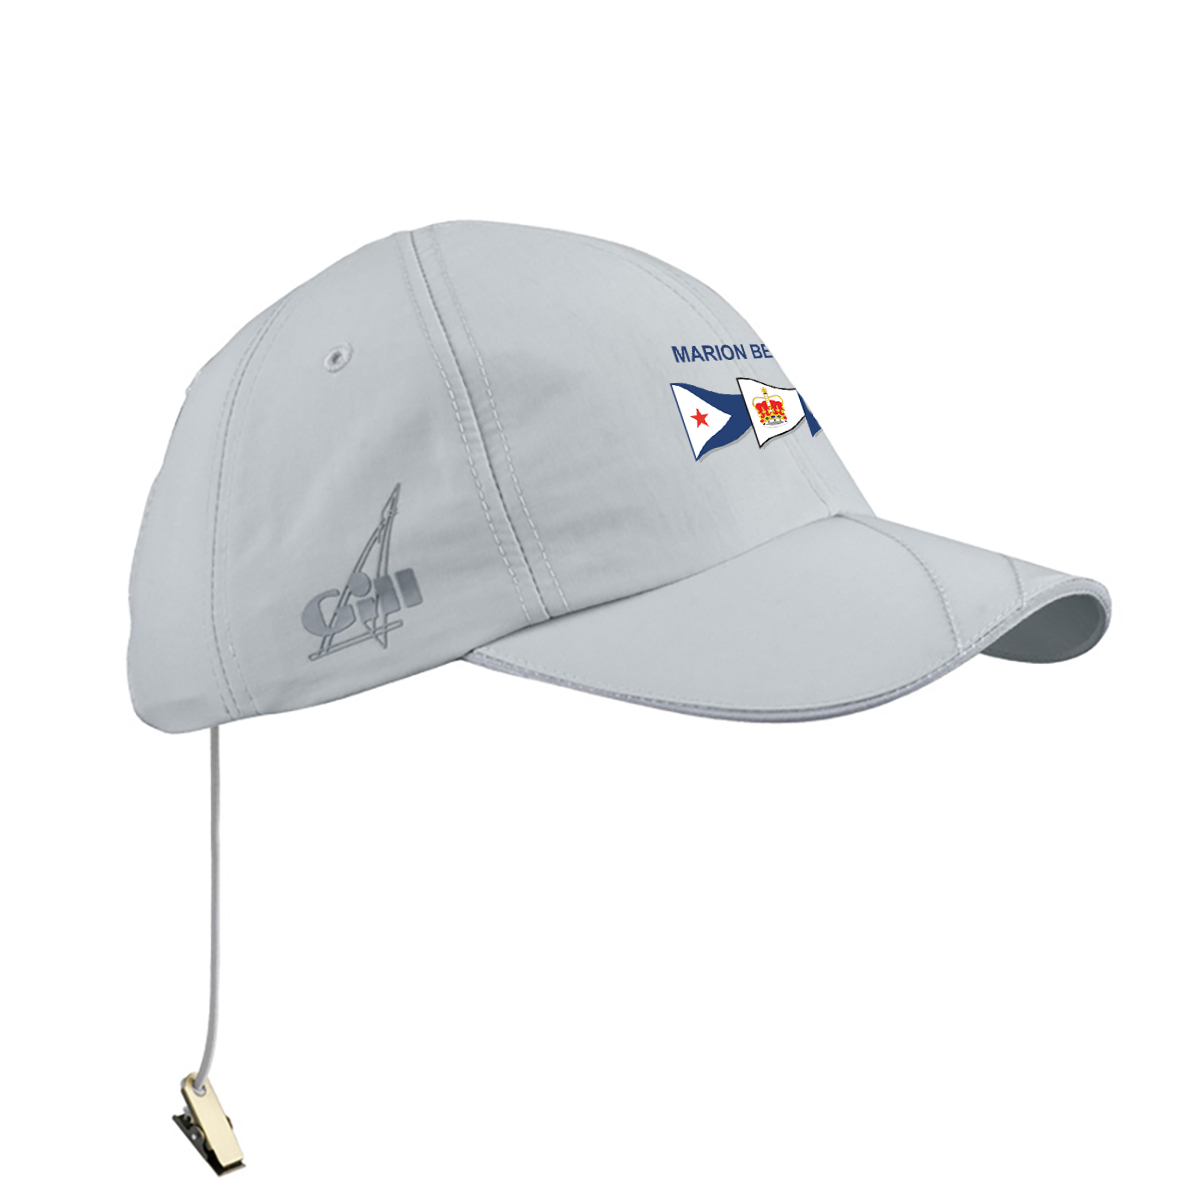 MBR 19 GILL UV TECH HAT